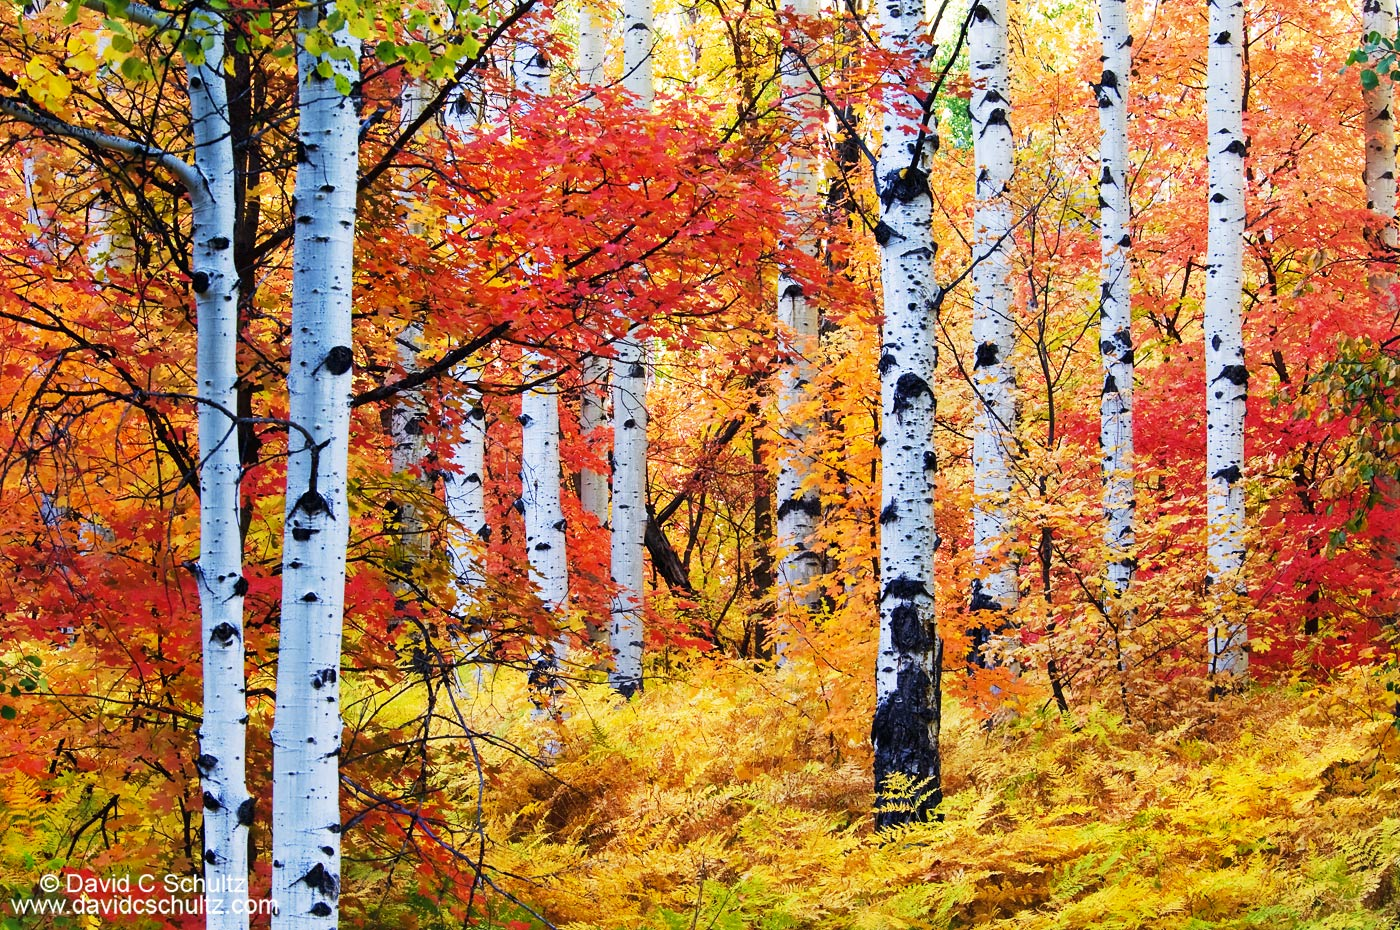 Utah aspen and maple trees in the fall - Image #3-5457